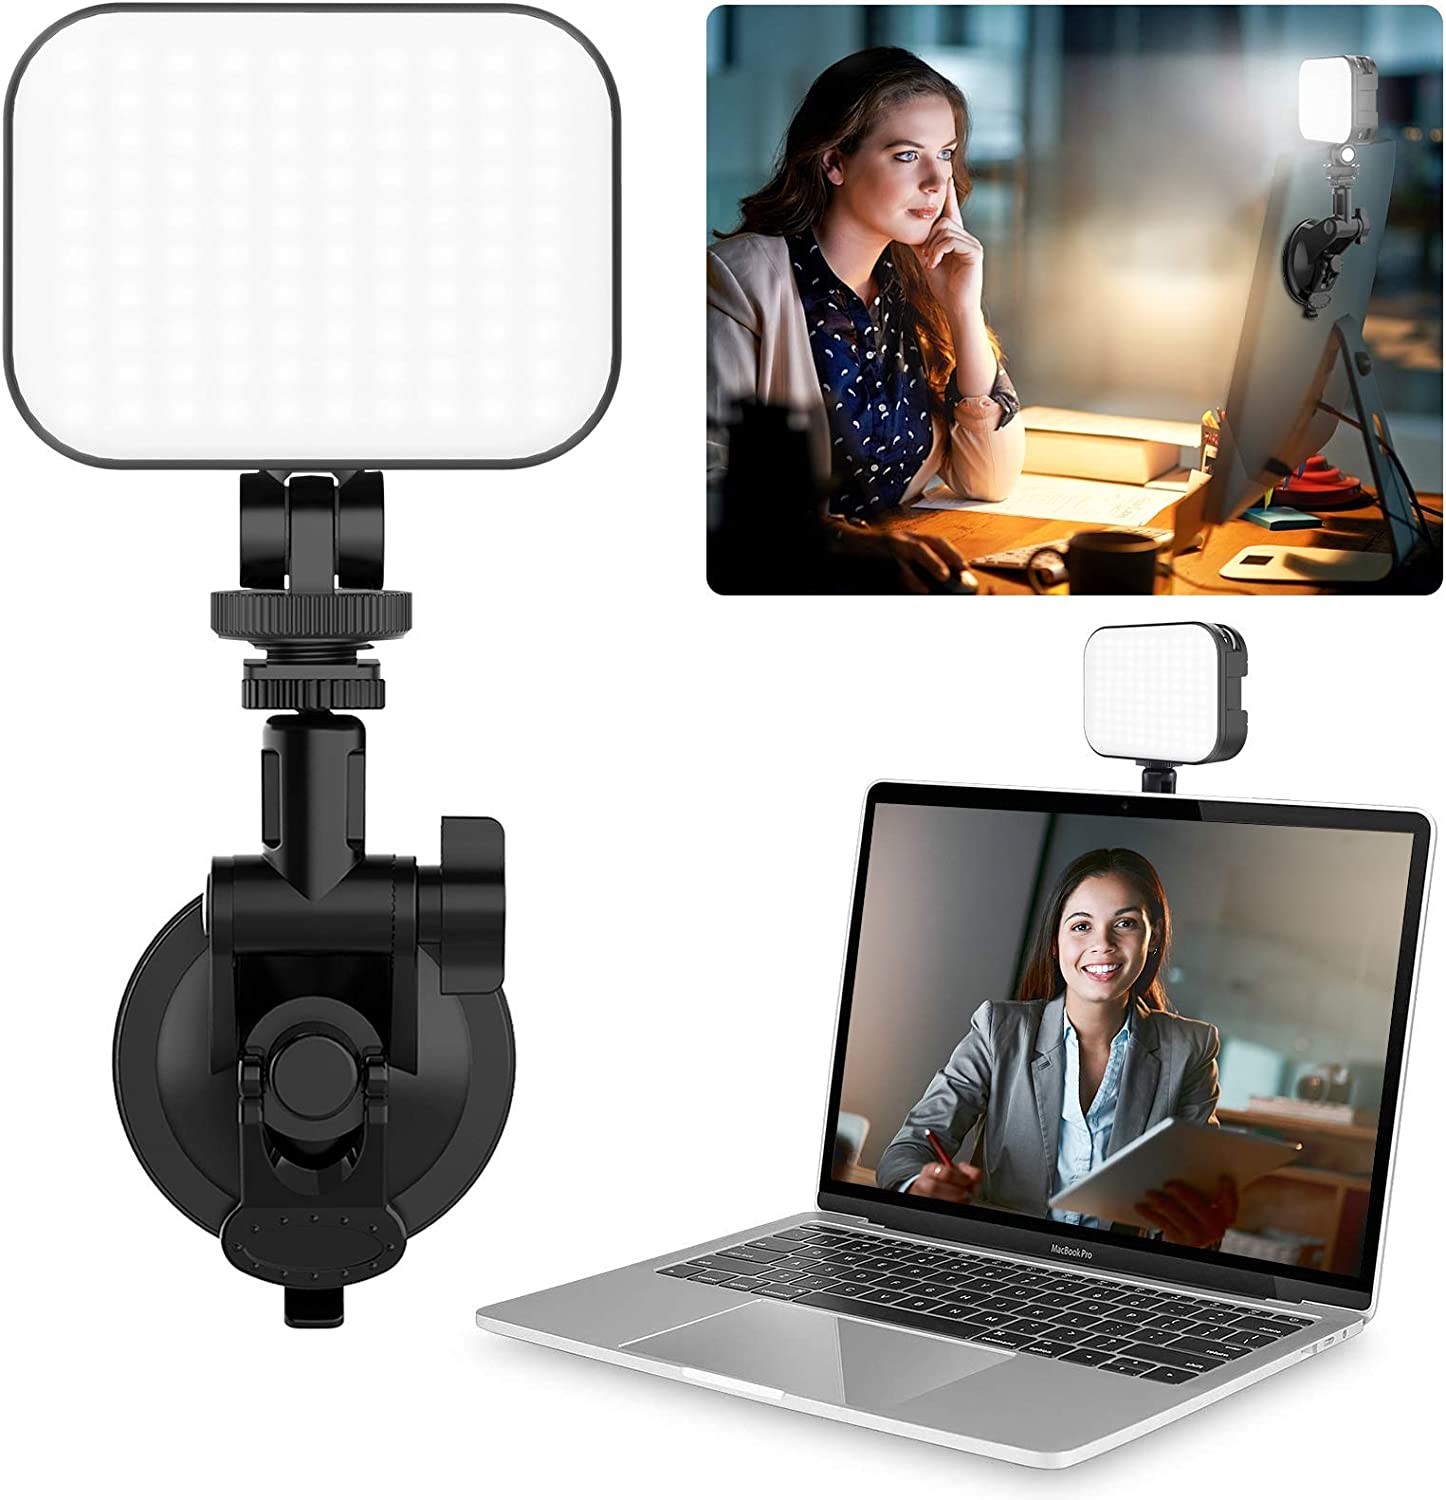 Computer Light for Laptop Video Conferencing, Adjustable Angle Fill Light Panel, Soft LED Webcam Lighting for Remote Work/Online Education/Makeup Live Streaming Evening Work Office PC Accessories